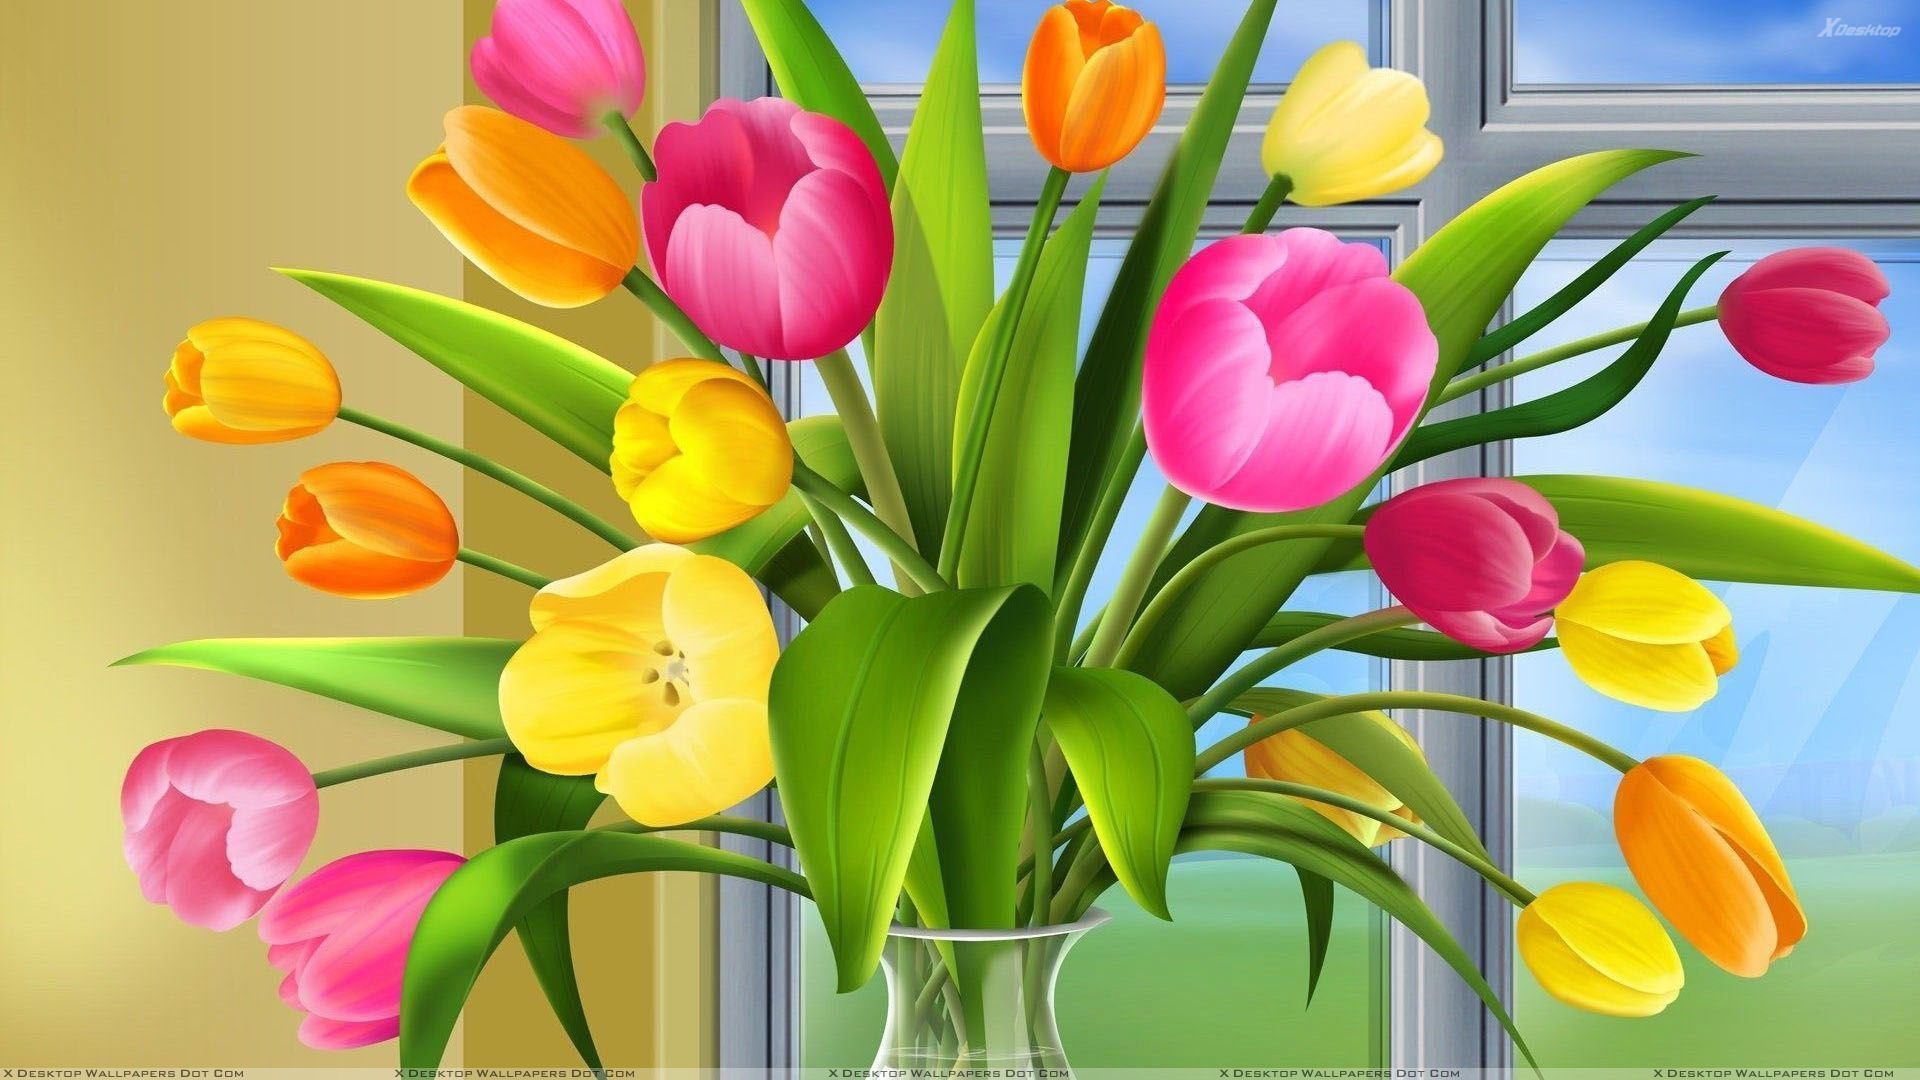 Colorful tulips in vase wallpaper you are viewing wallpaper titled colorful tulips in vase floridaeventfo Gallery